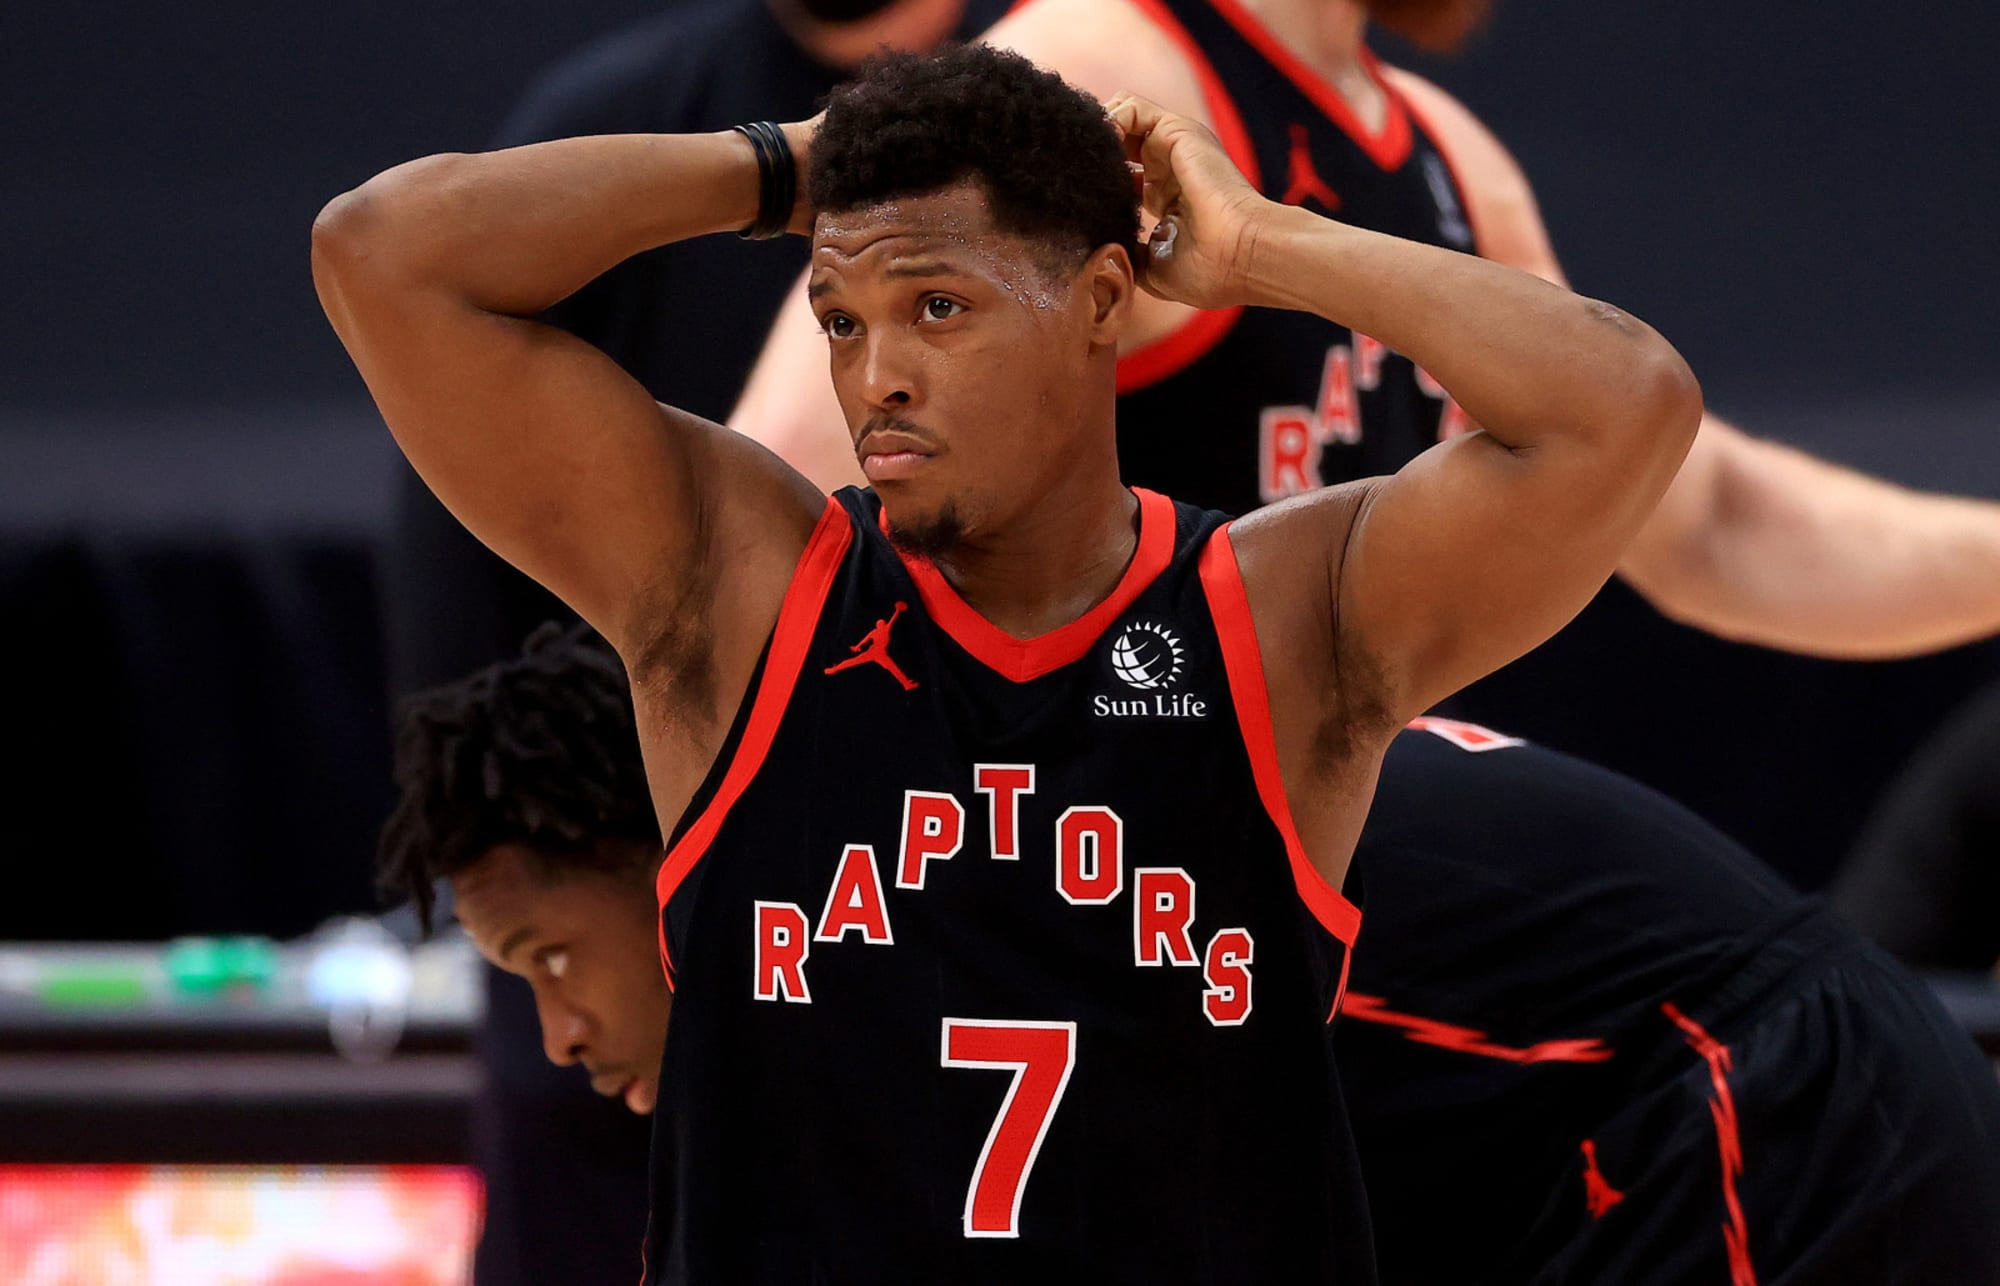 Raptors: Trading Kyle Lowry has plenty of pros and cons